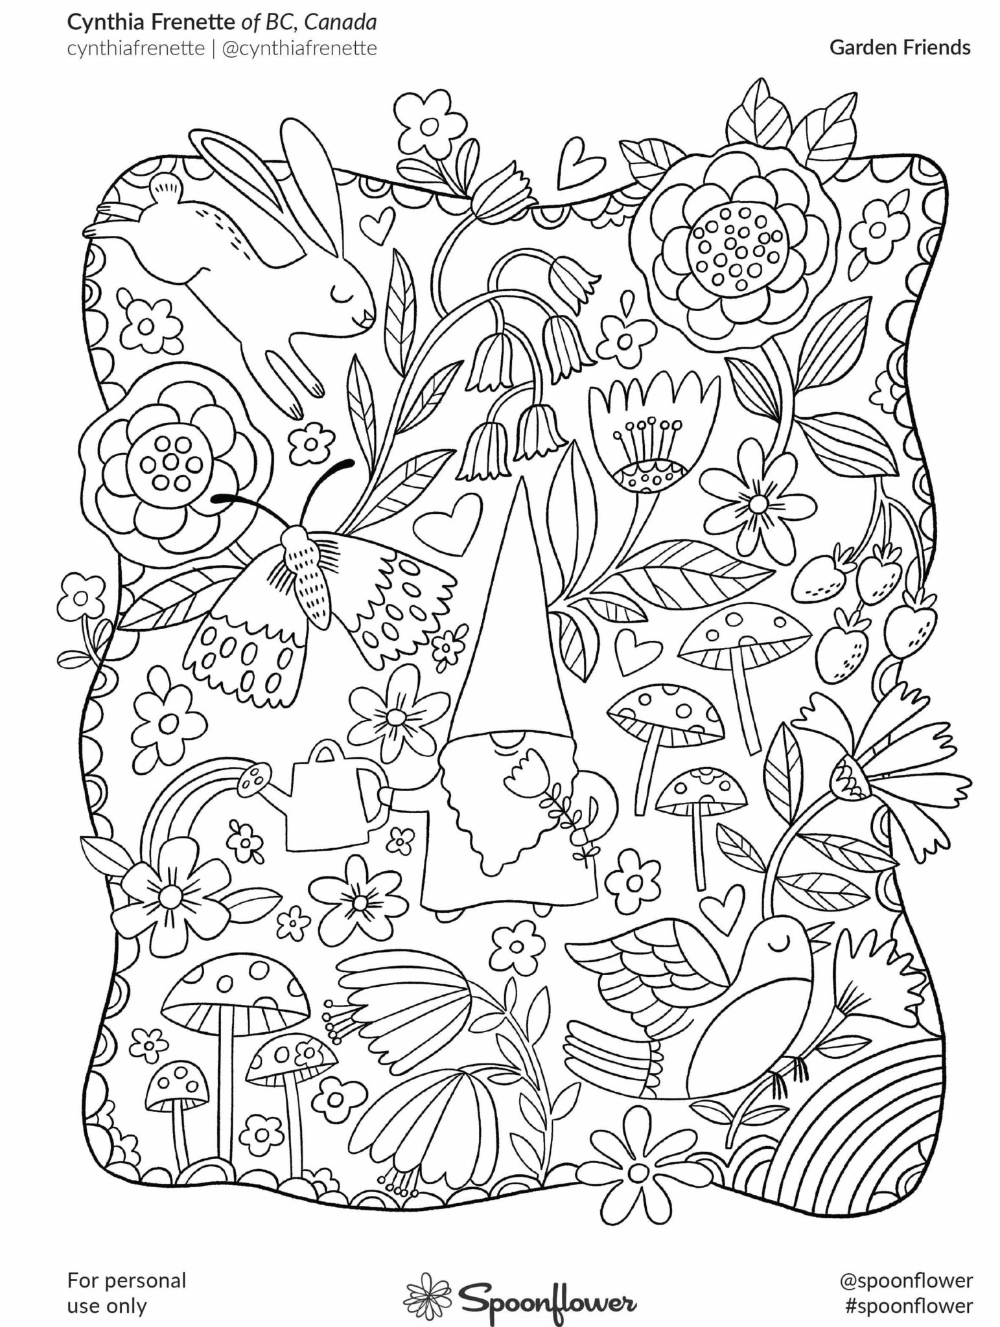 The Spoonflower Community Coloring Book Spoonflower Blog Charm Pack Quilts Hello Kitty Tattoos Coloring Books